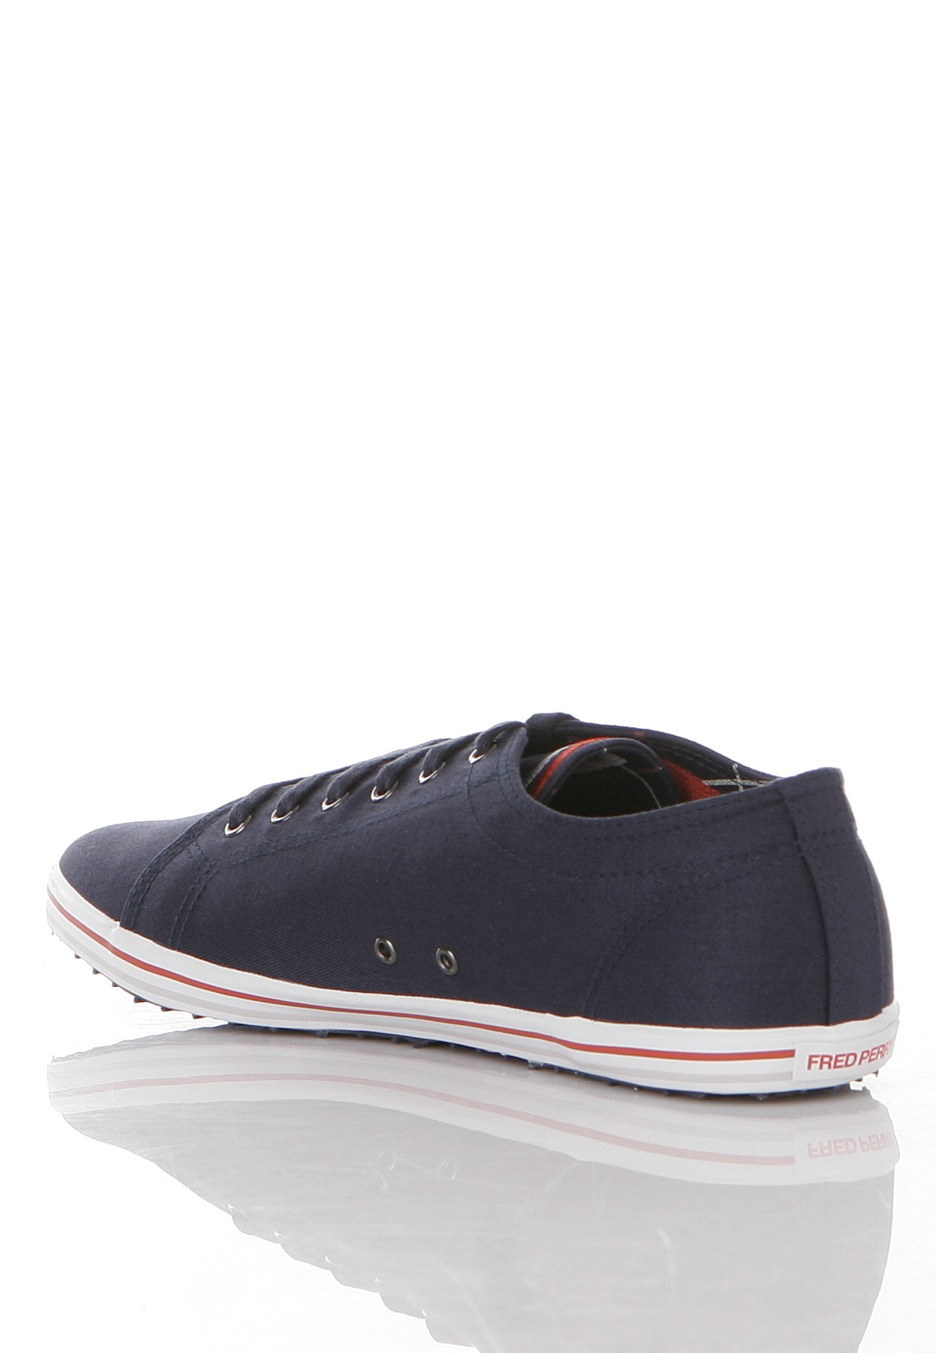 Fred Perry Shoes Sale Australia